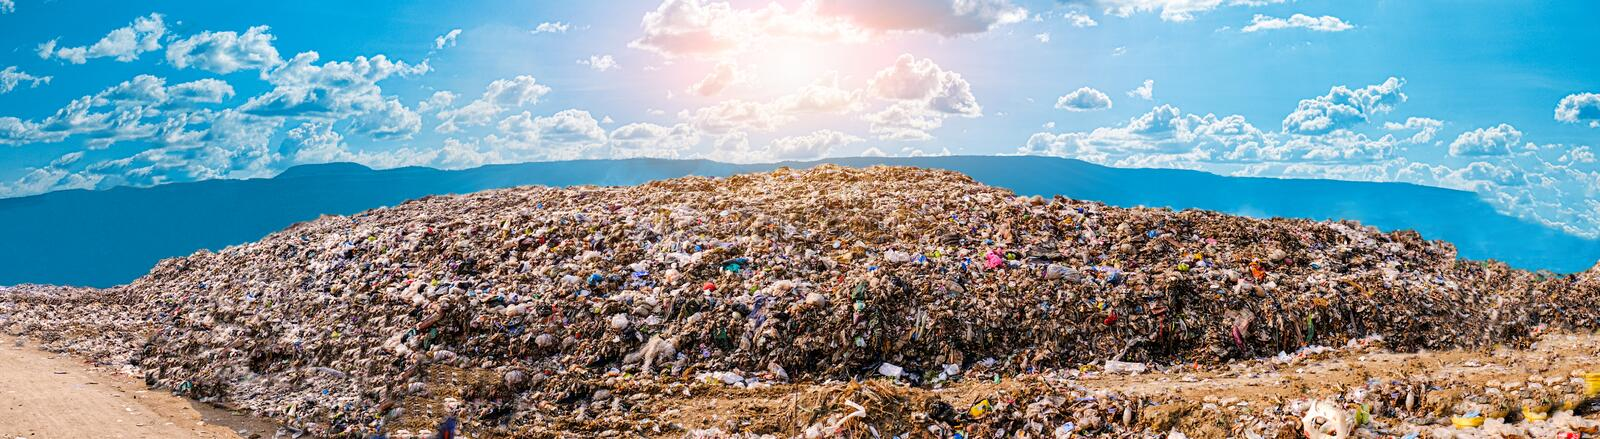 Mountain large garbage pile and pollution royalty free stock photo